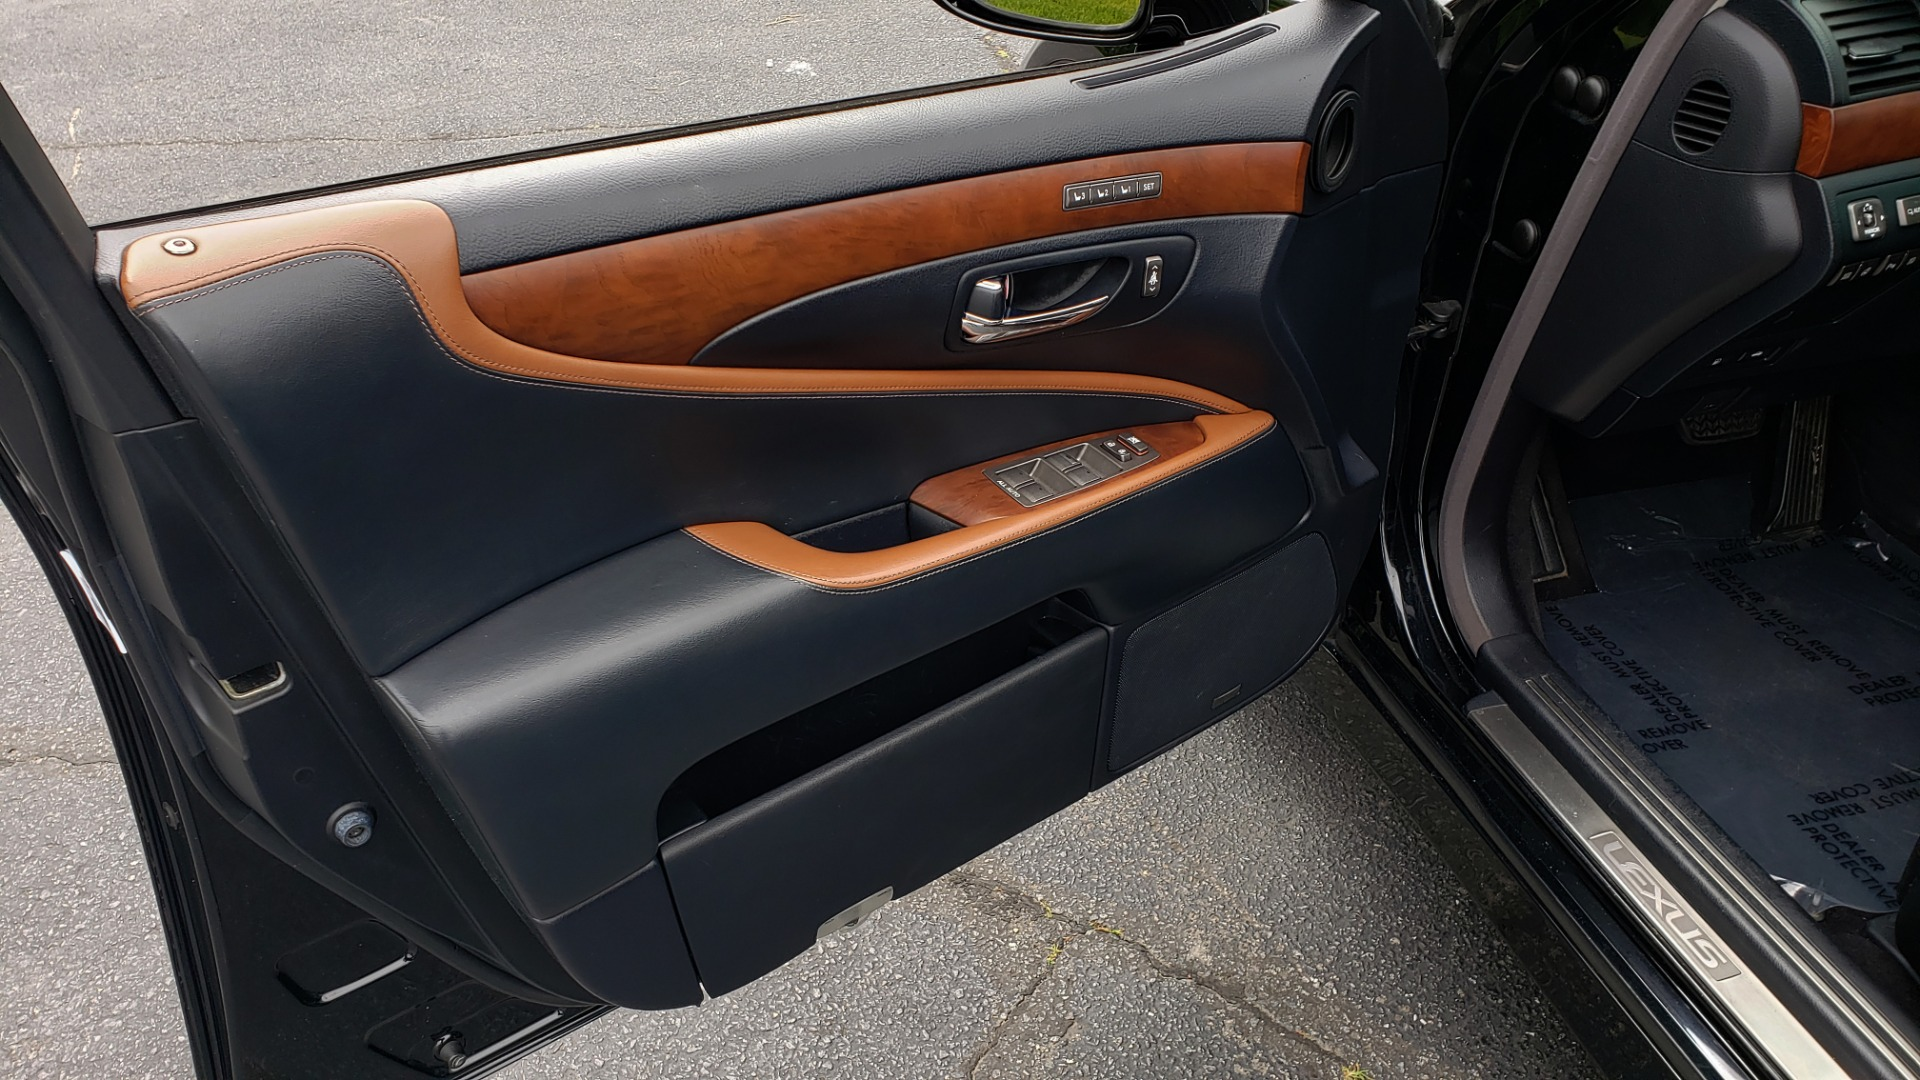 Used 2012 Lexus LS 460 COMFORT W/SPORT / VENT SEATS / NAV / MARK LEV SND / SUNROOF for sale Sold at Formula Imports in Charlotte NC 28227 29